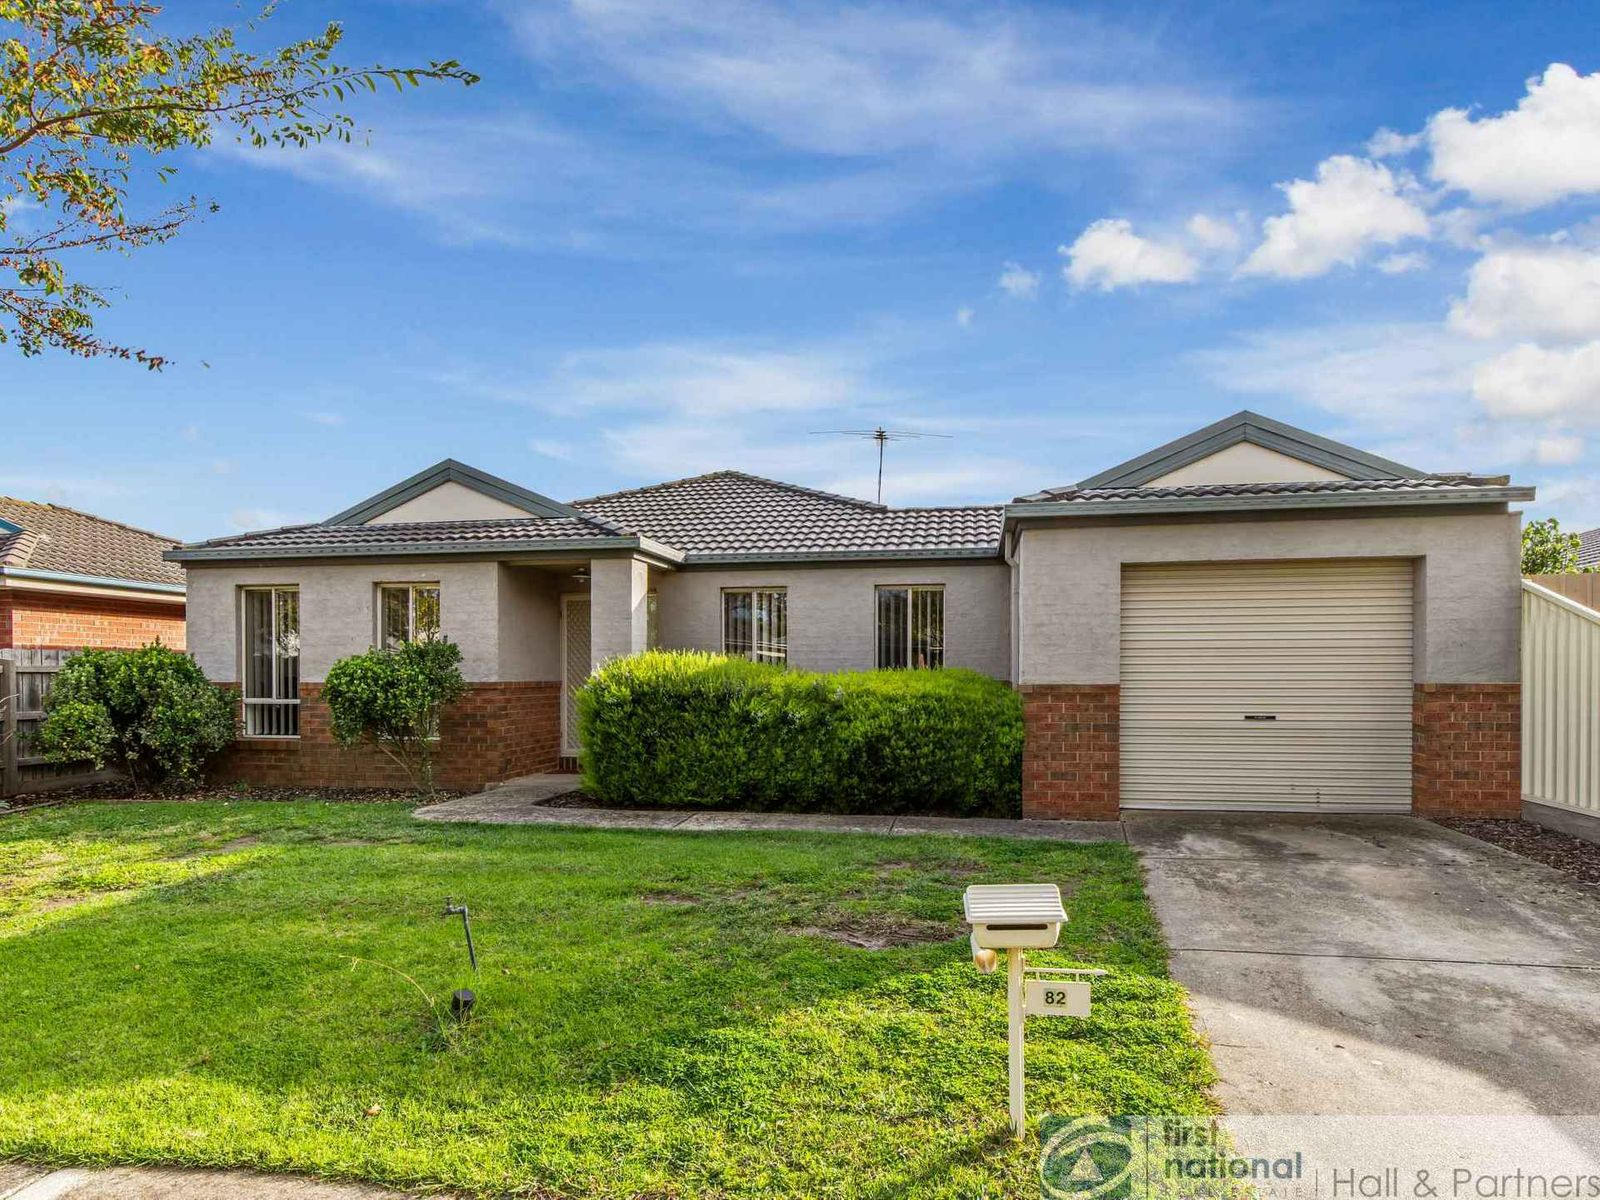 82 Harold Keys Drive, Narre Warren South, VIC 3805